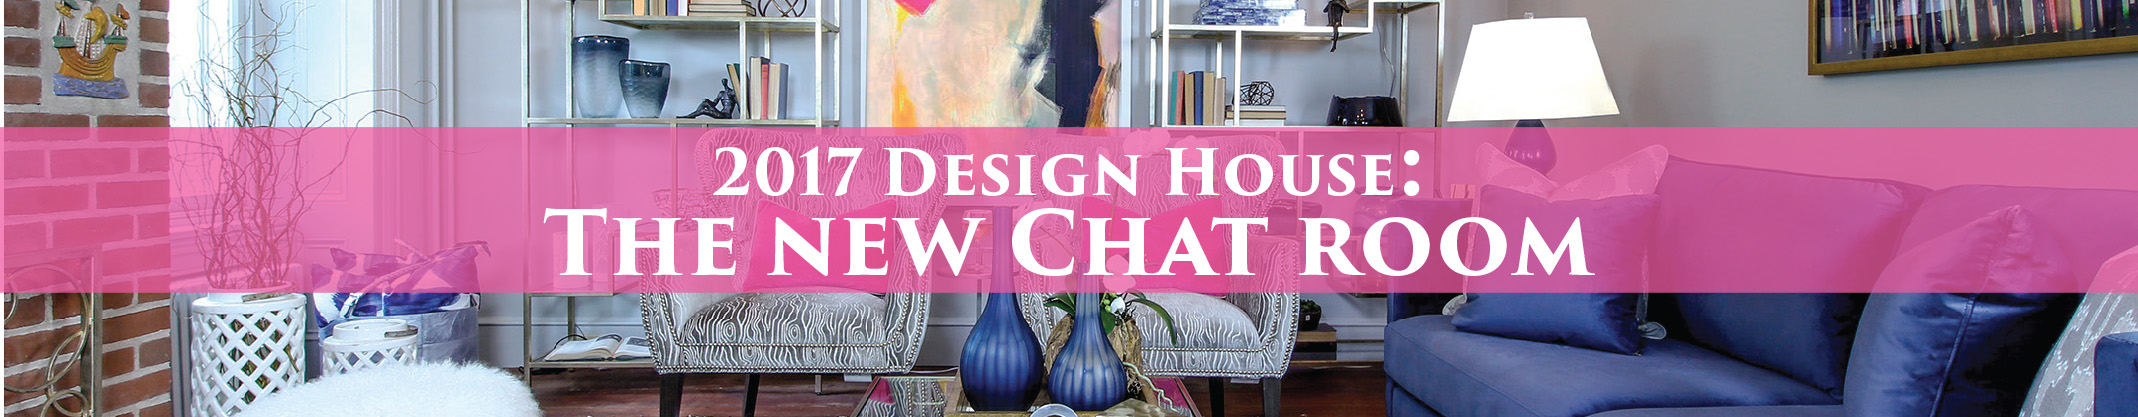 The New Chat Room: Design House 2017